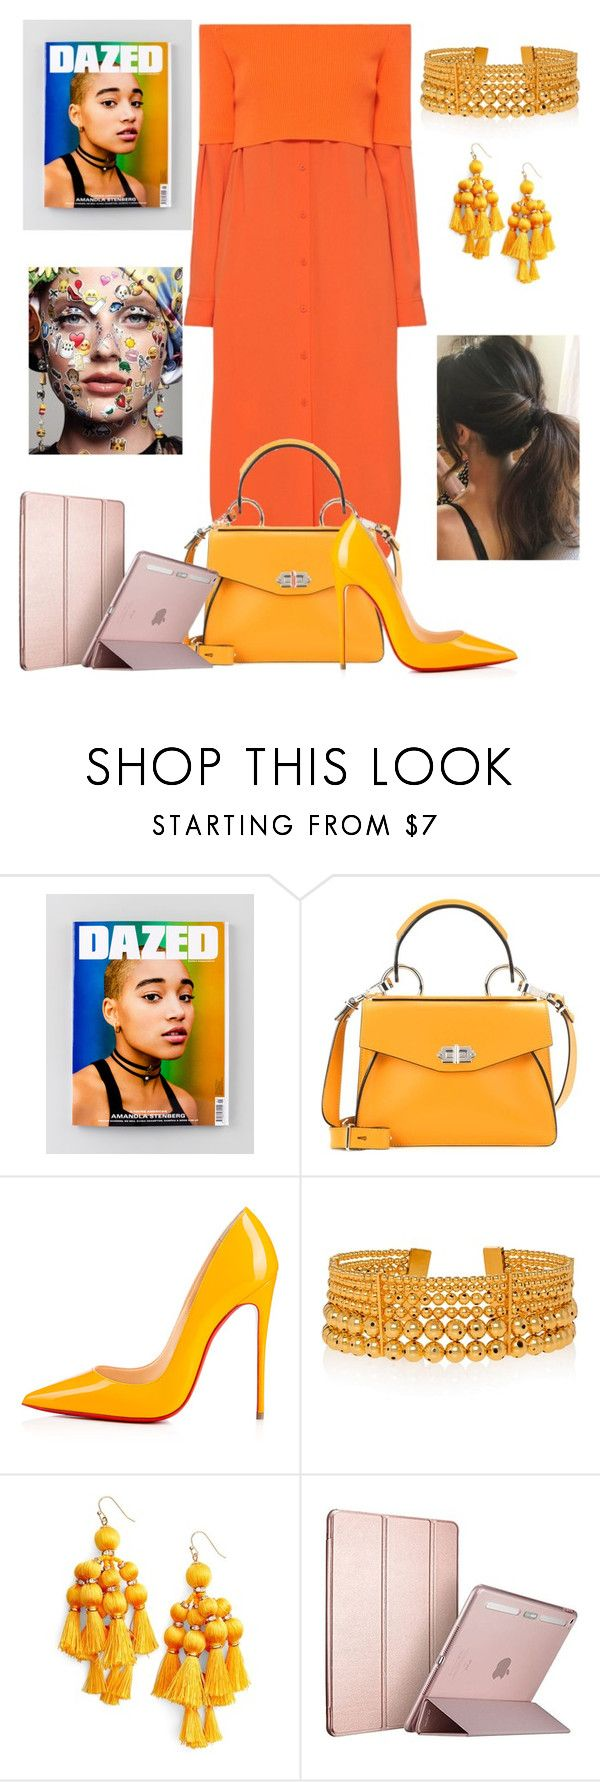 """Art Editor"" by jurneefade ❤ liked on Polyvore featuring DKNY, Proenza Schouler, Christian Louboutin, Paula Mendoza and Kate Spade"